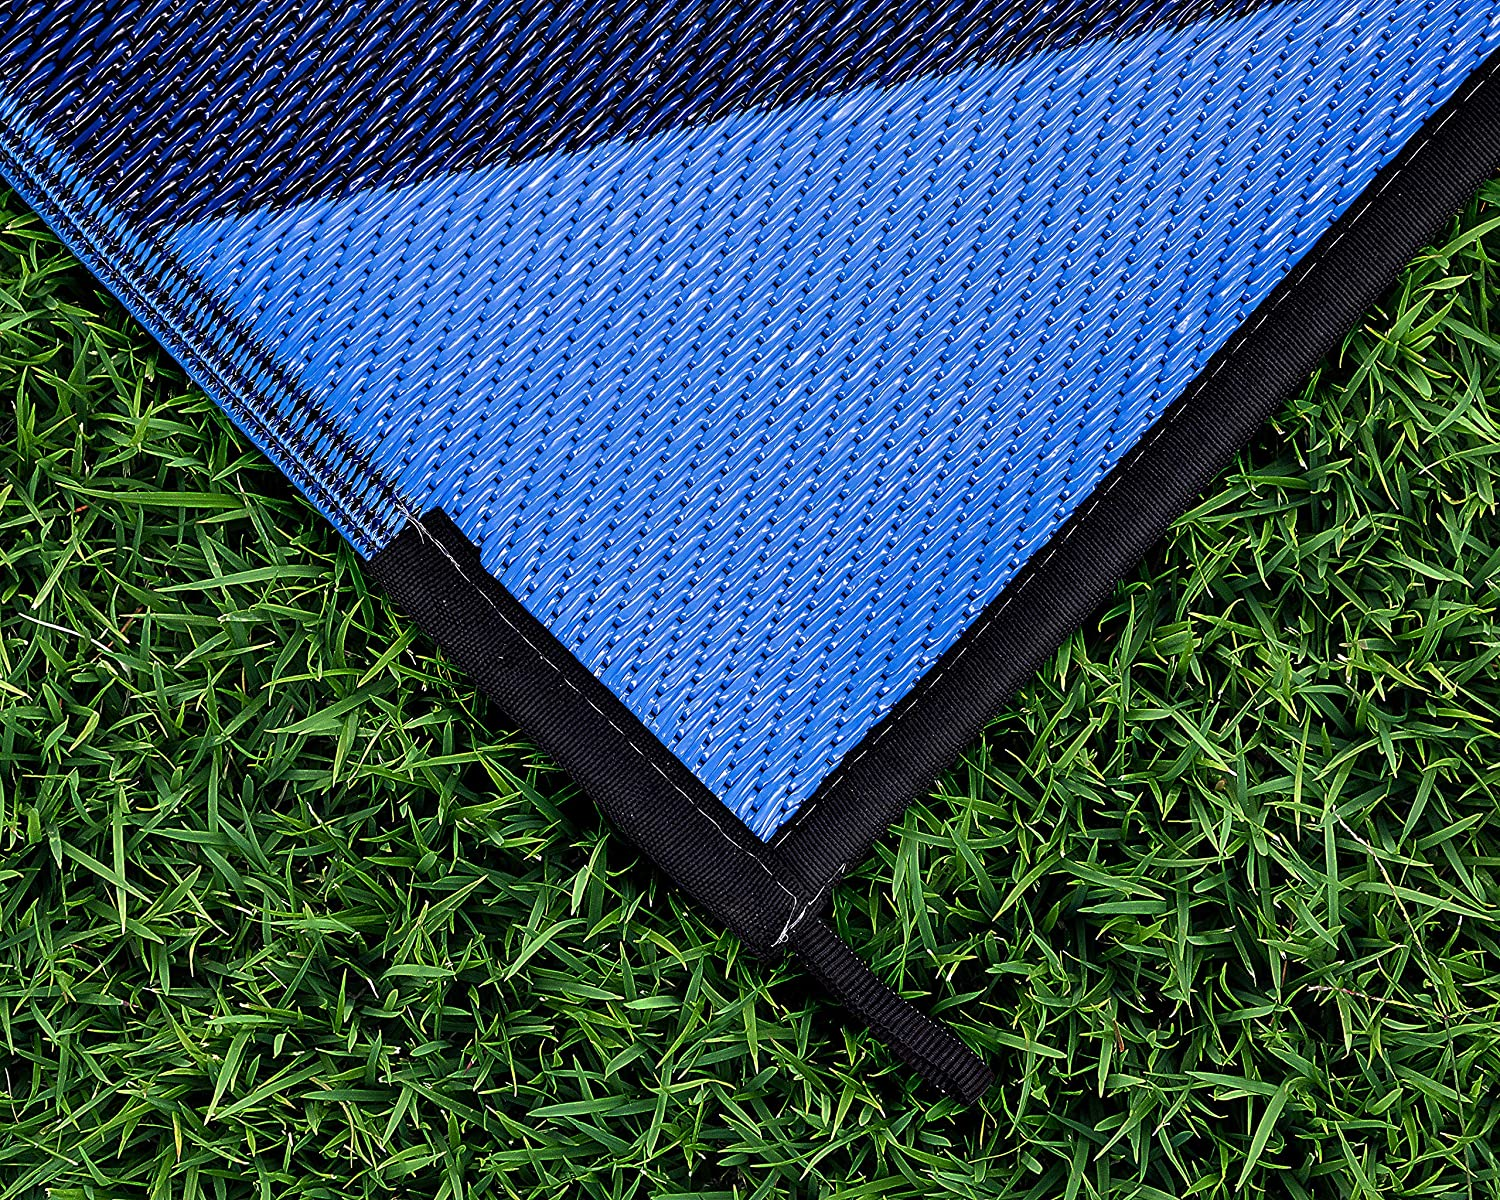 6 x 9, Brown Lattice Design Perfect for Picnics Easy to Clean Mold and Mildew Resistant and The Beach Camco Large Reversible Outdoor Patio Mat Camping 42877 Cookouts